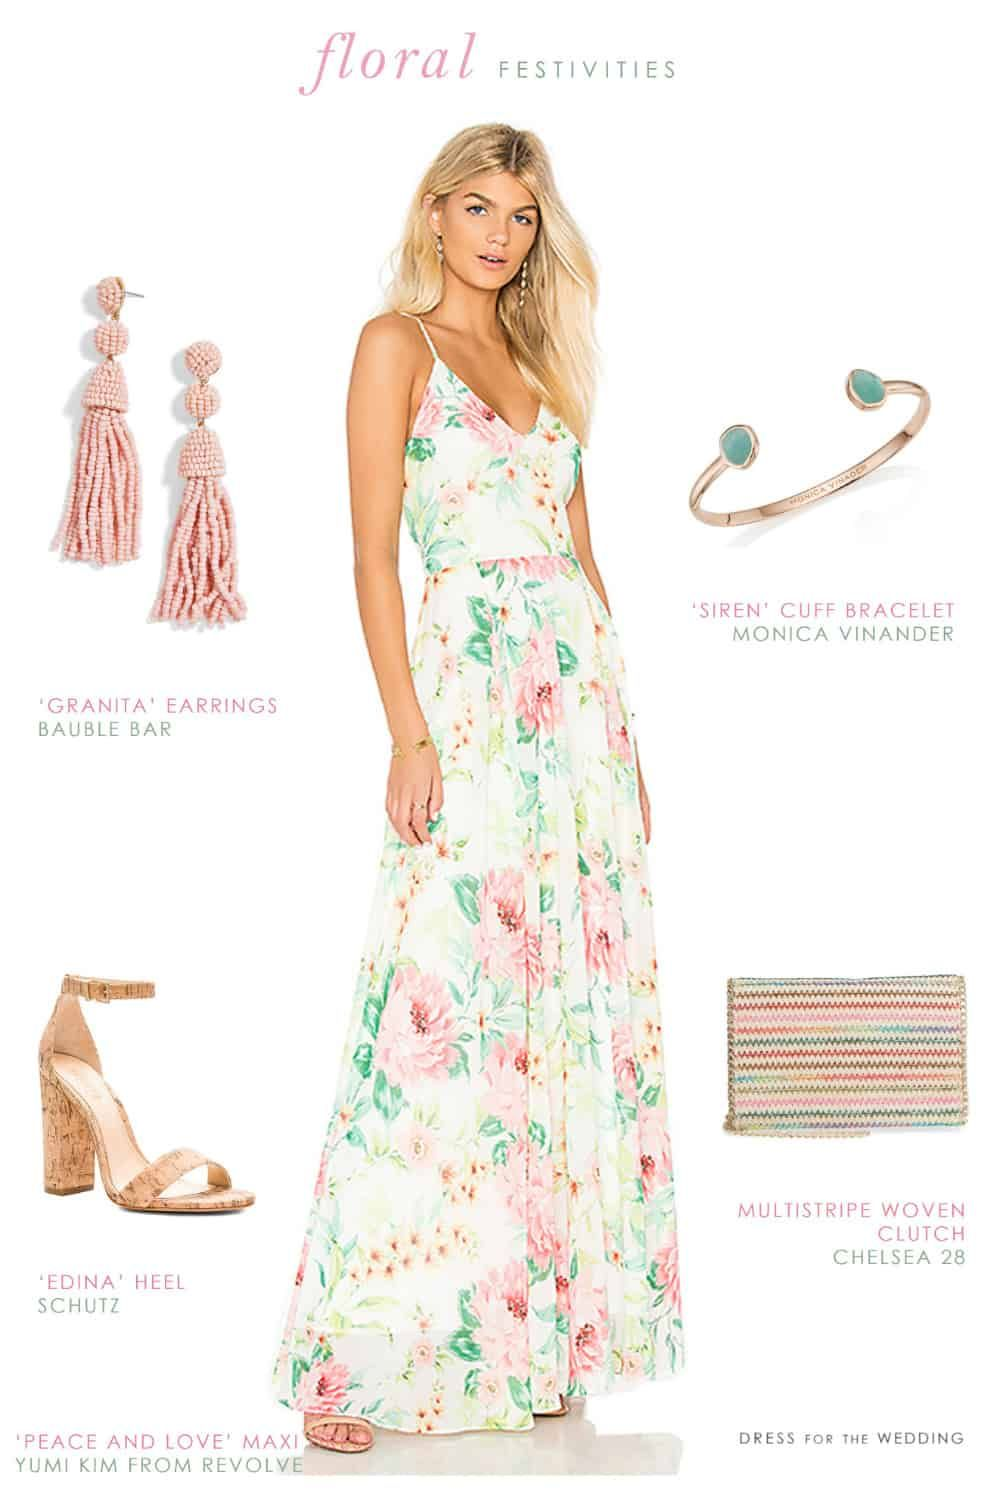 Styling A Ivory Pink And Green Floral Maxi Dress For Summer Dress For The Wedding Summer Fashion Dresses Maxi Maxi Dress Green Summer Dresses [ 1491 x 1000 Pixel ]